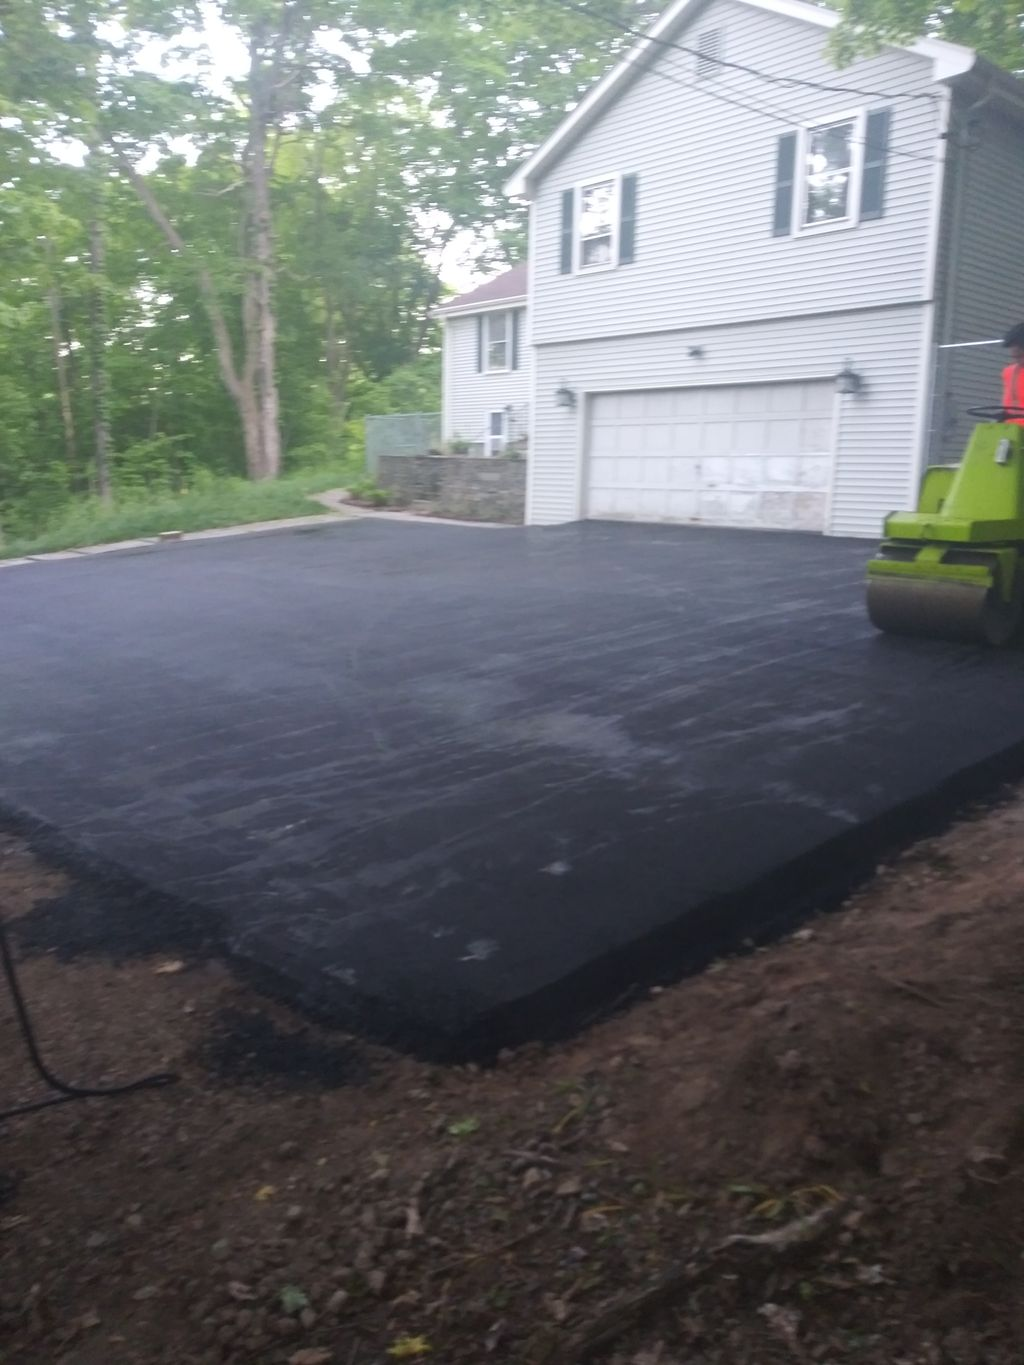 Digout, gravel, grade, and pave